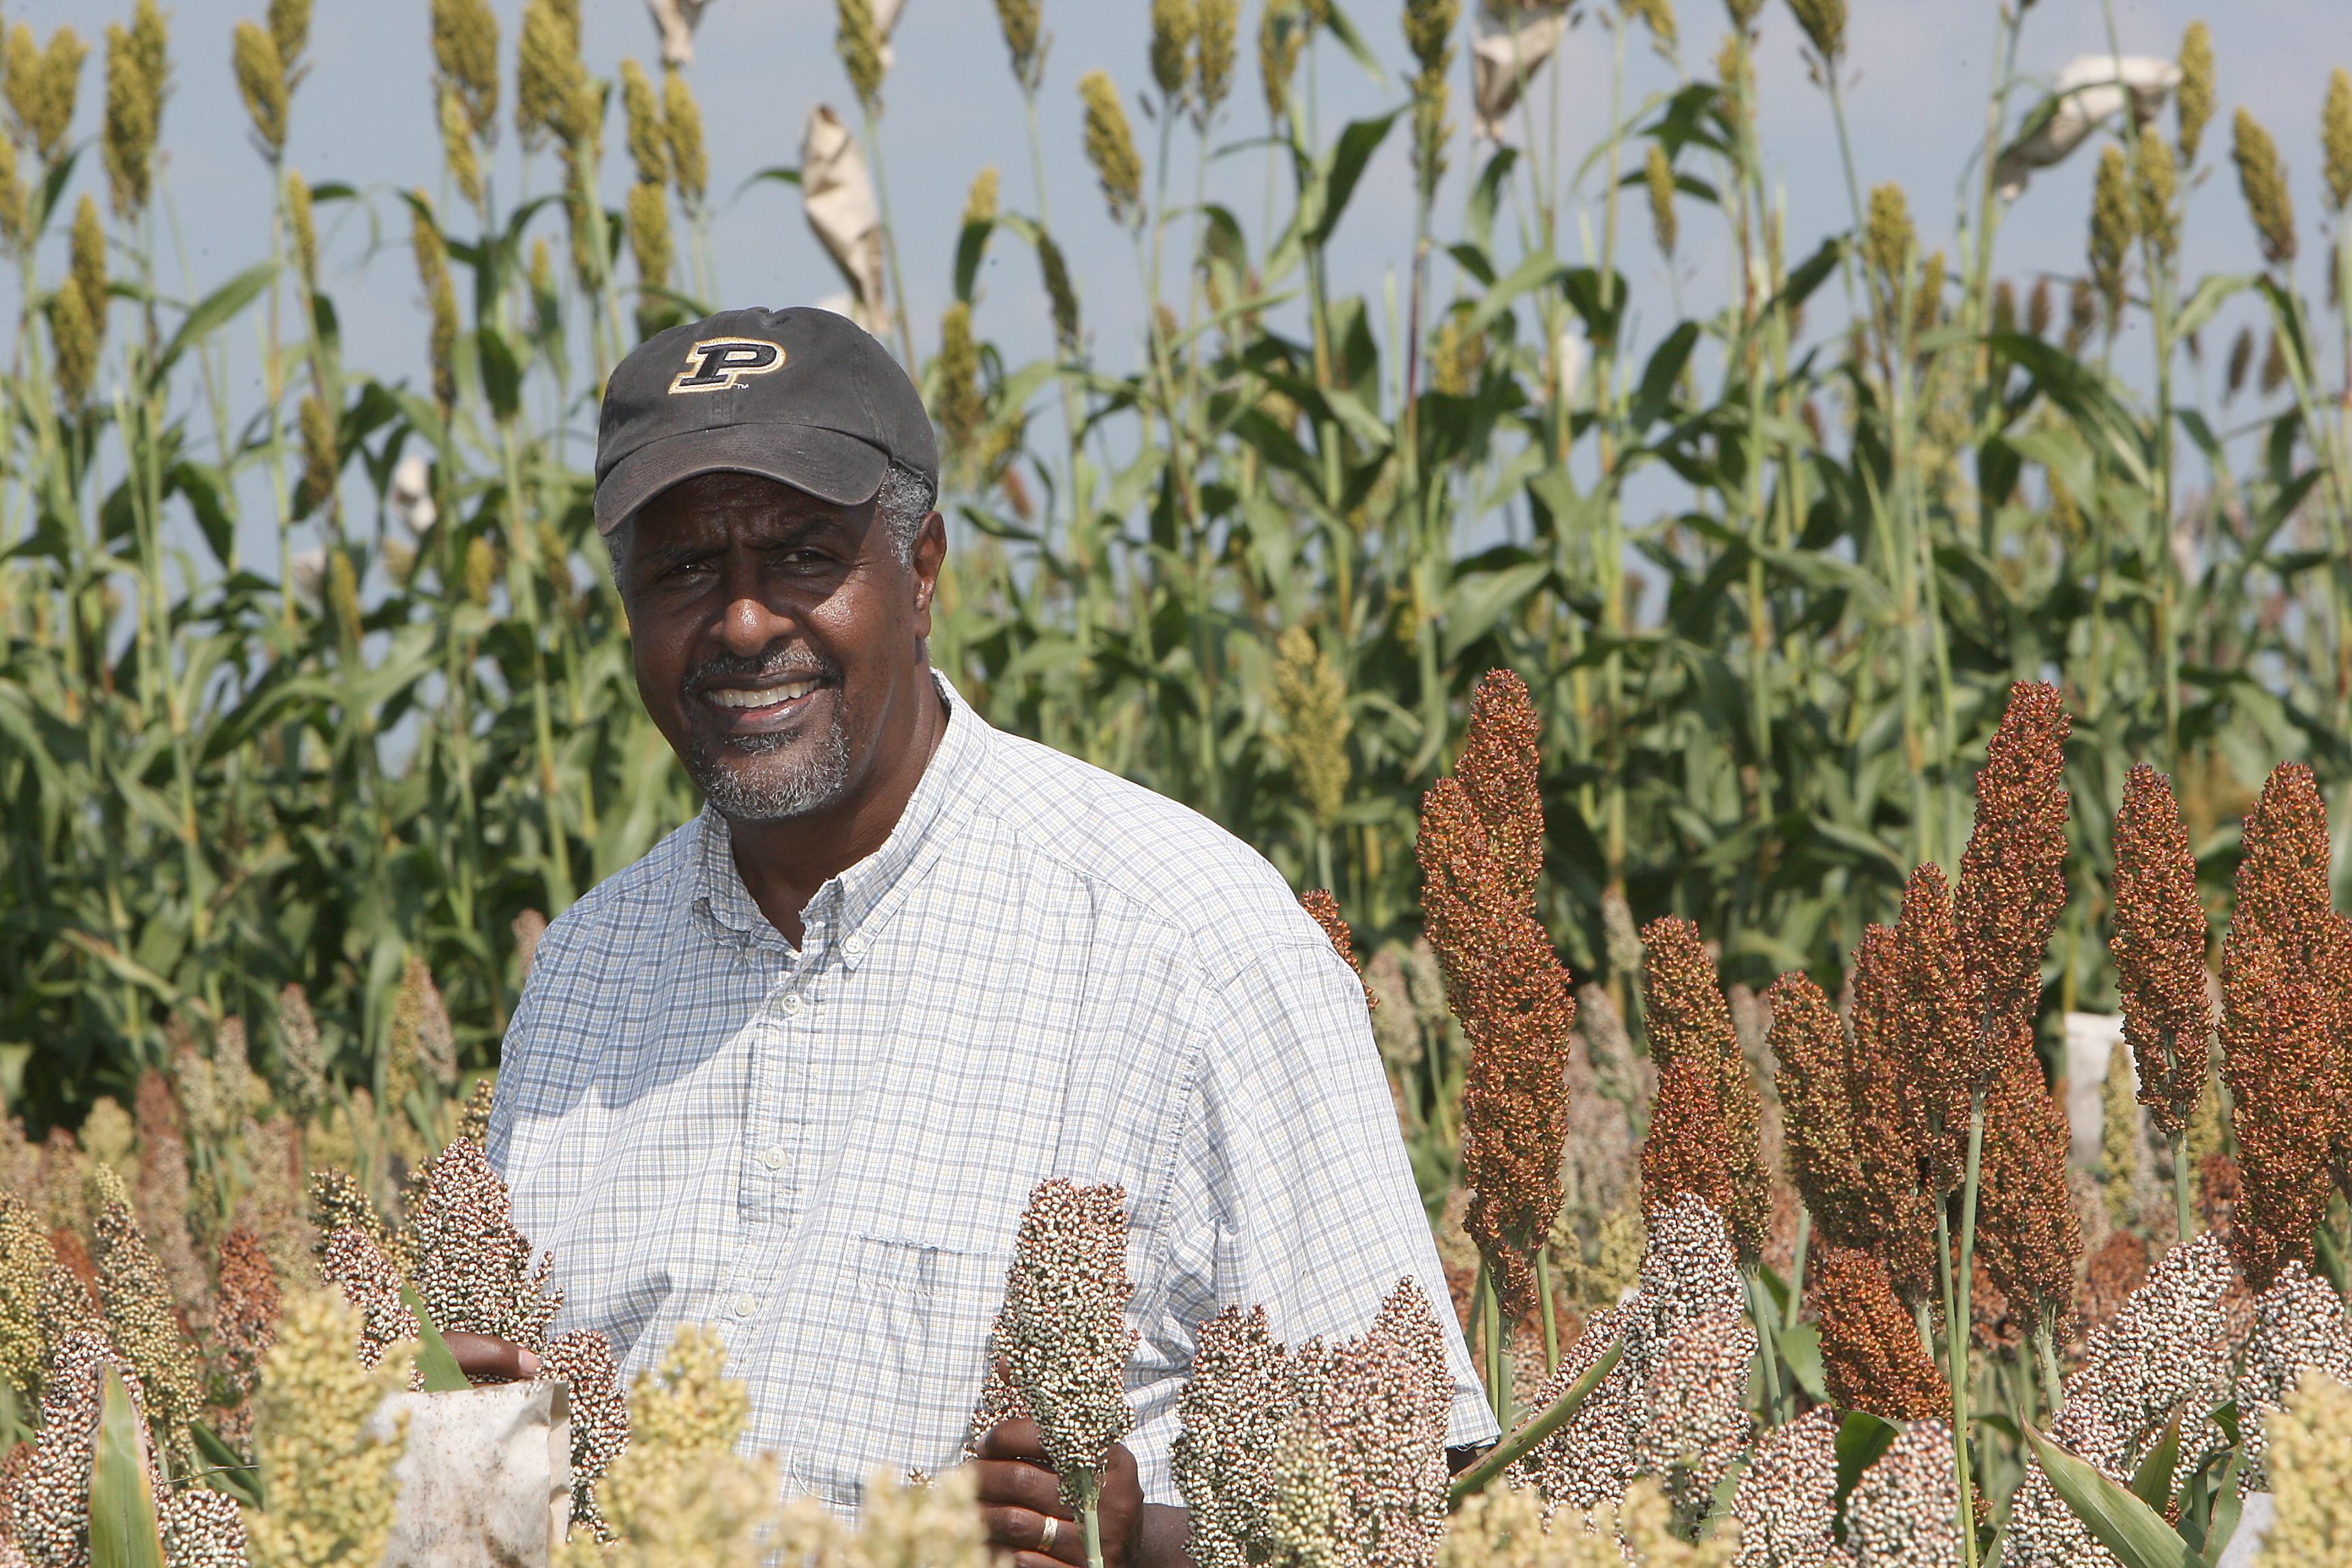 Gebisa Ejeta, director of the Purdue Center for Global Food Security, surrounded by a crop of sorghum.